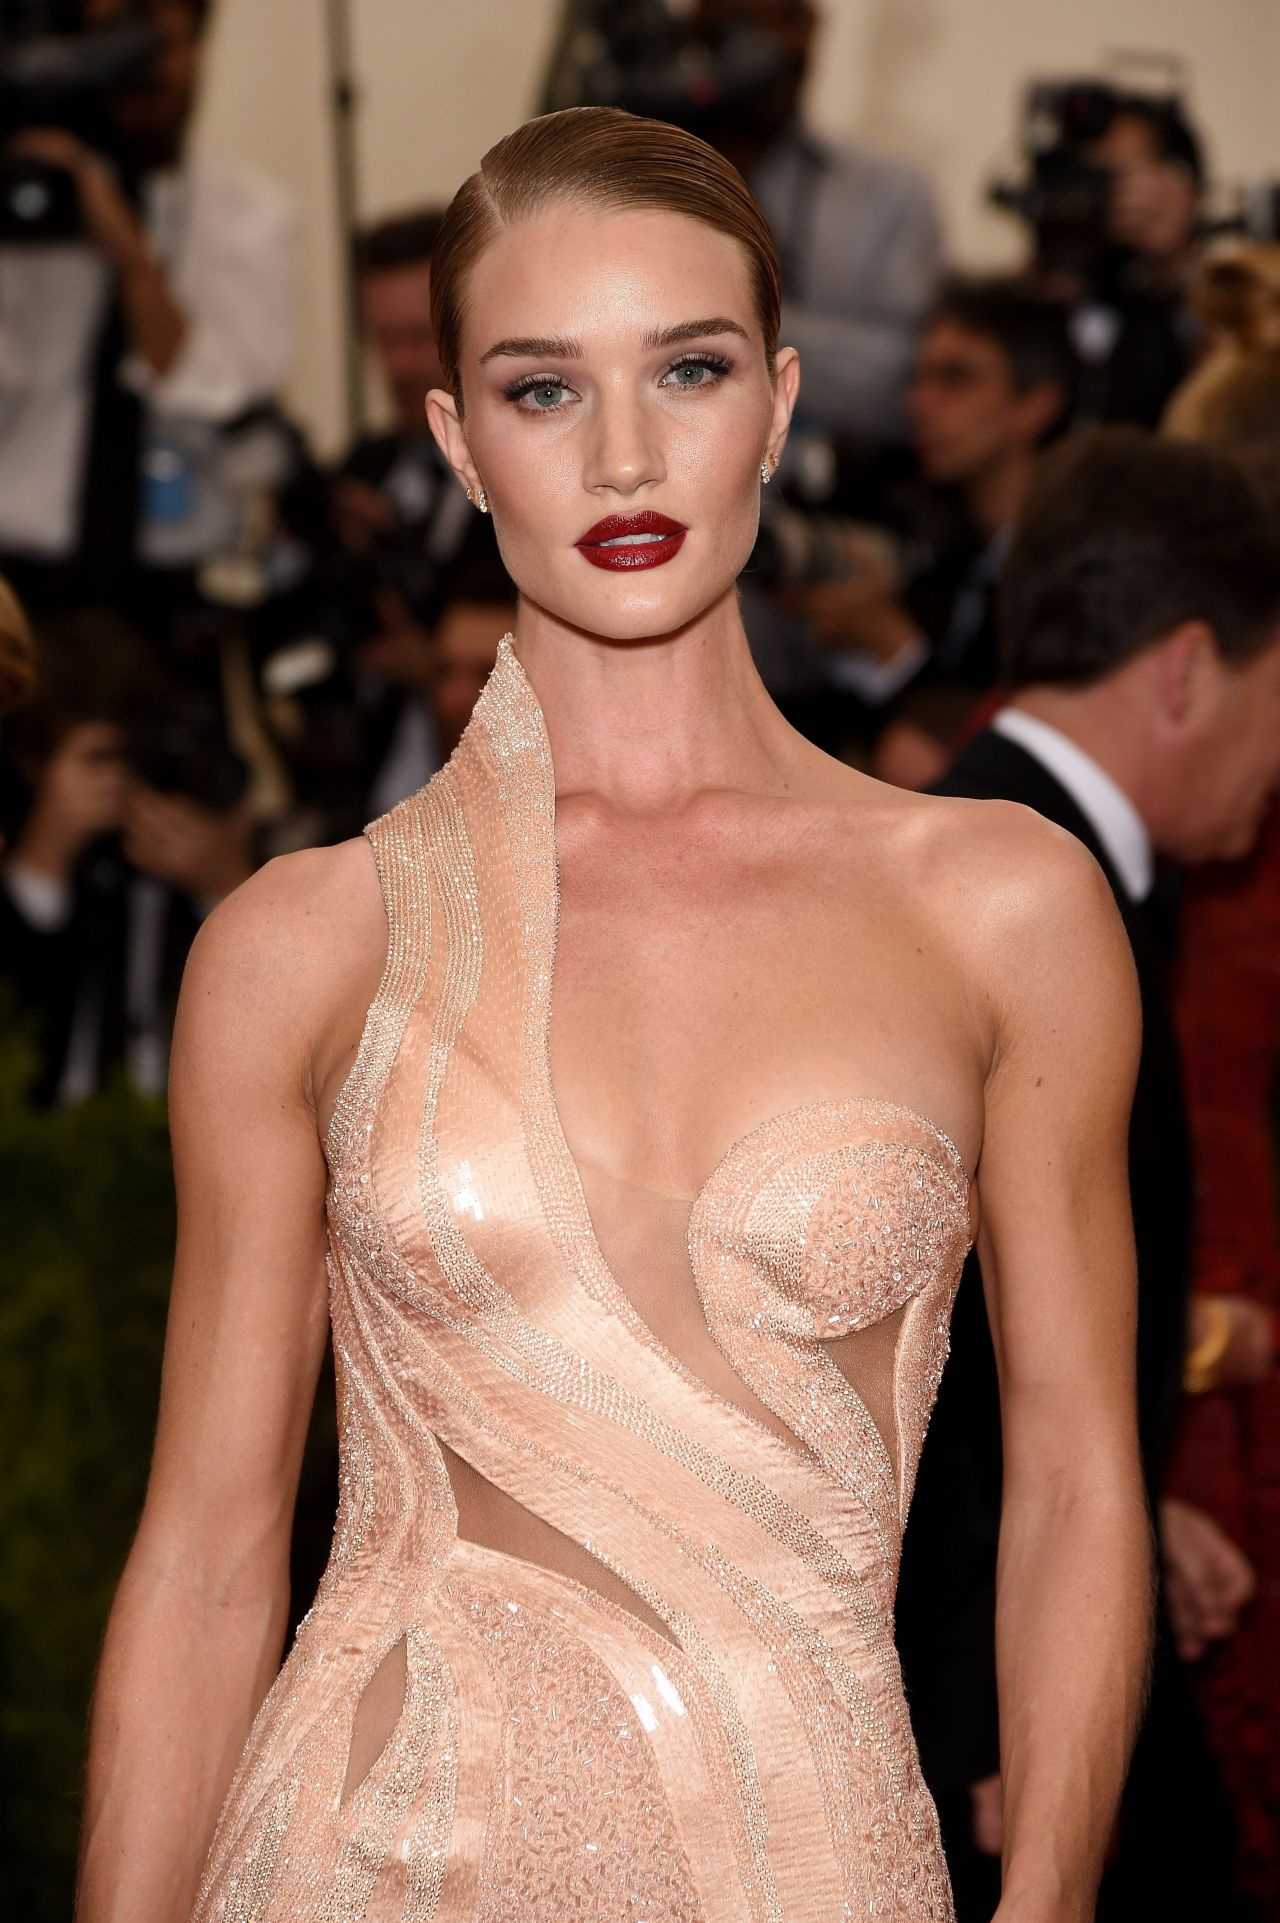 rosie-huntington-whiteley-2015-costume-institute-benefit-gala-in-new-york-city-04